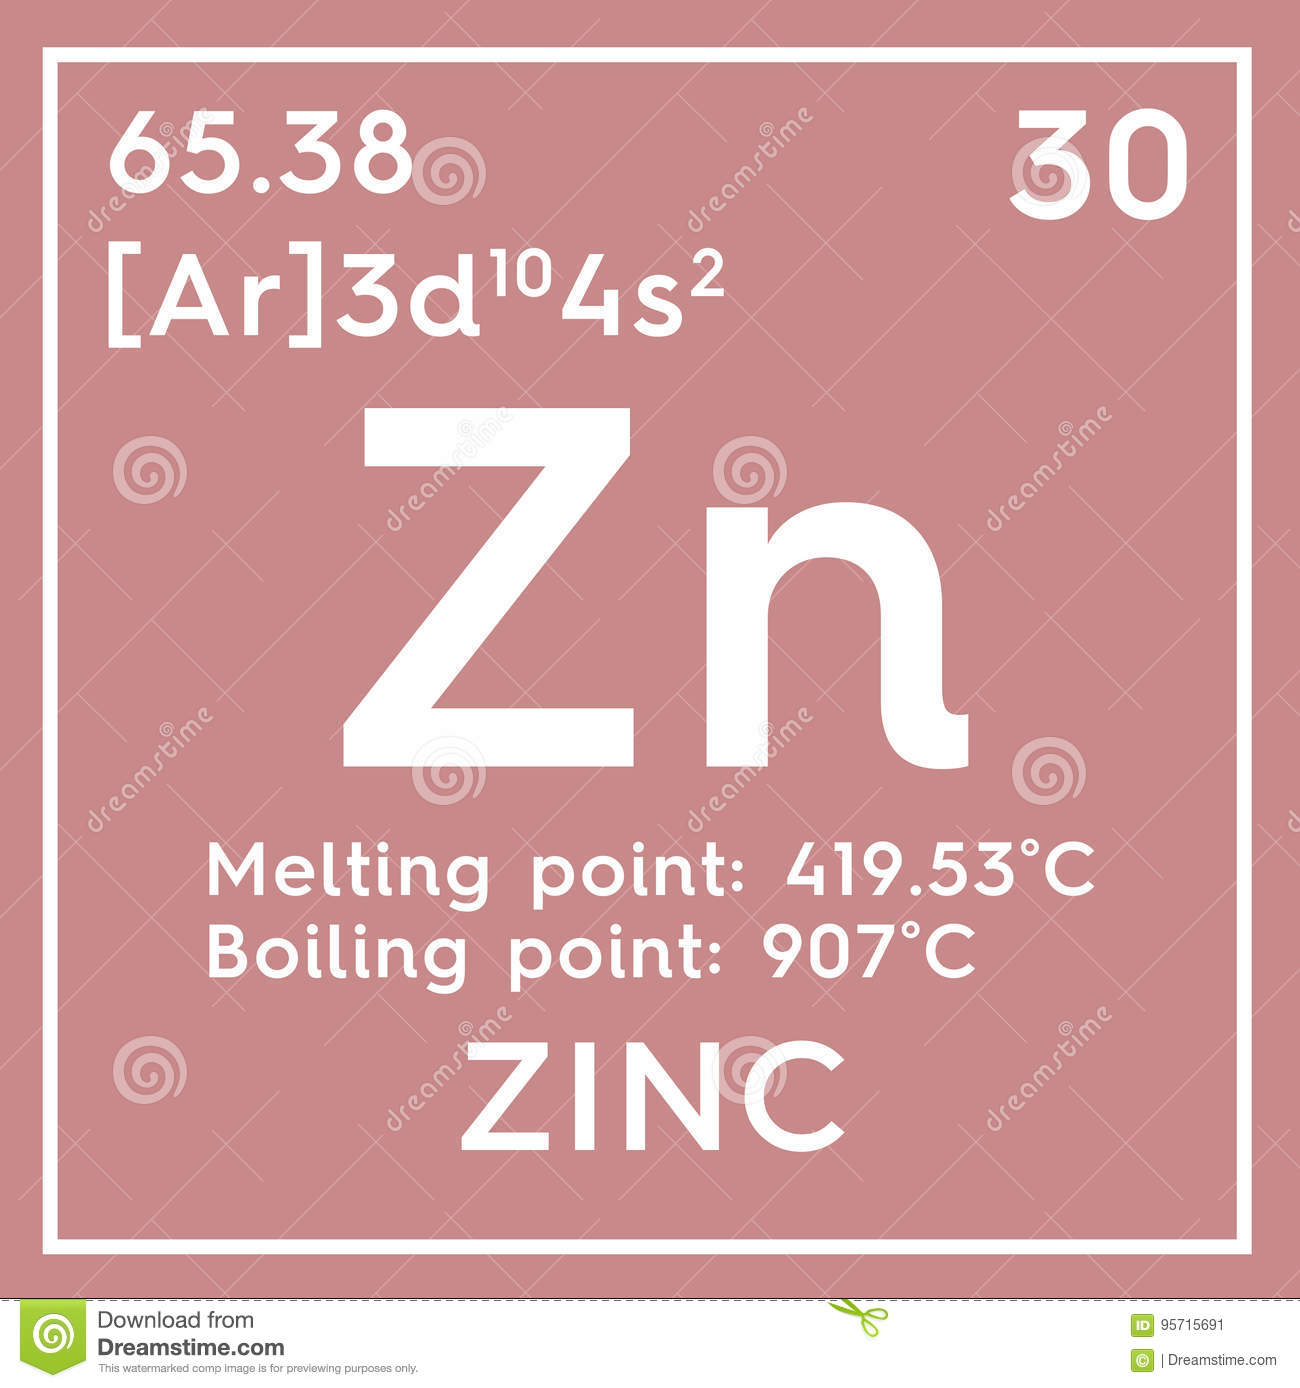 Zinc transition metals chemical element of mendeleev x27s zinc transition metals chemical element of mendeleev x27s periodic table gamestrikefo Gallery